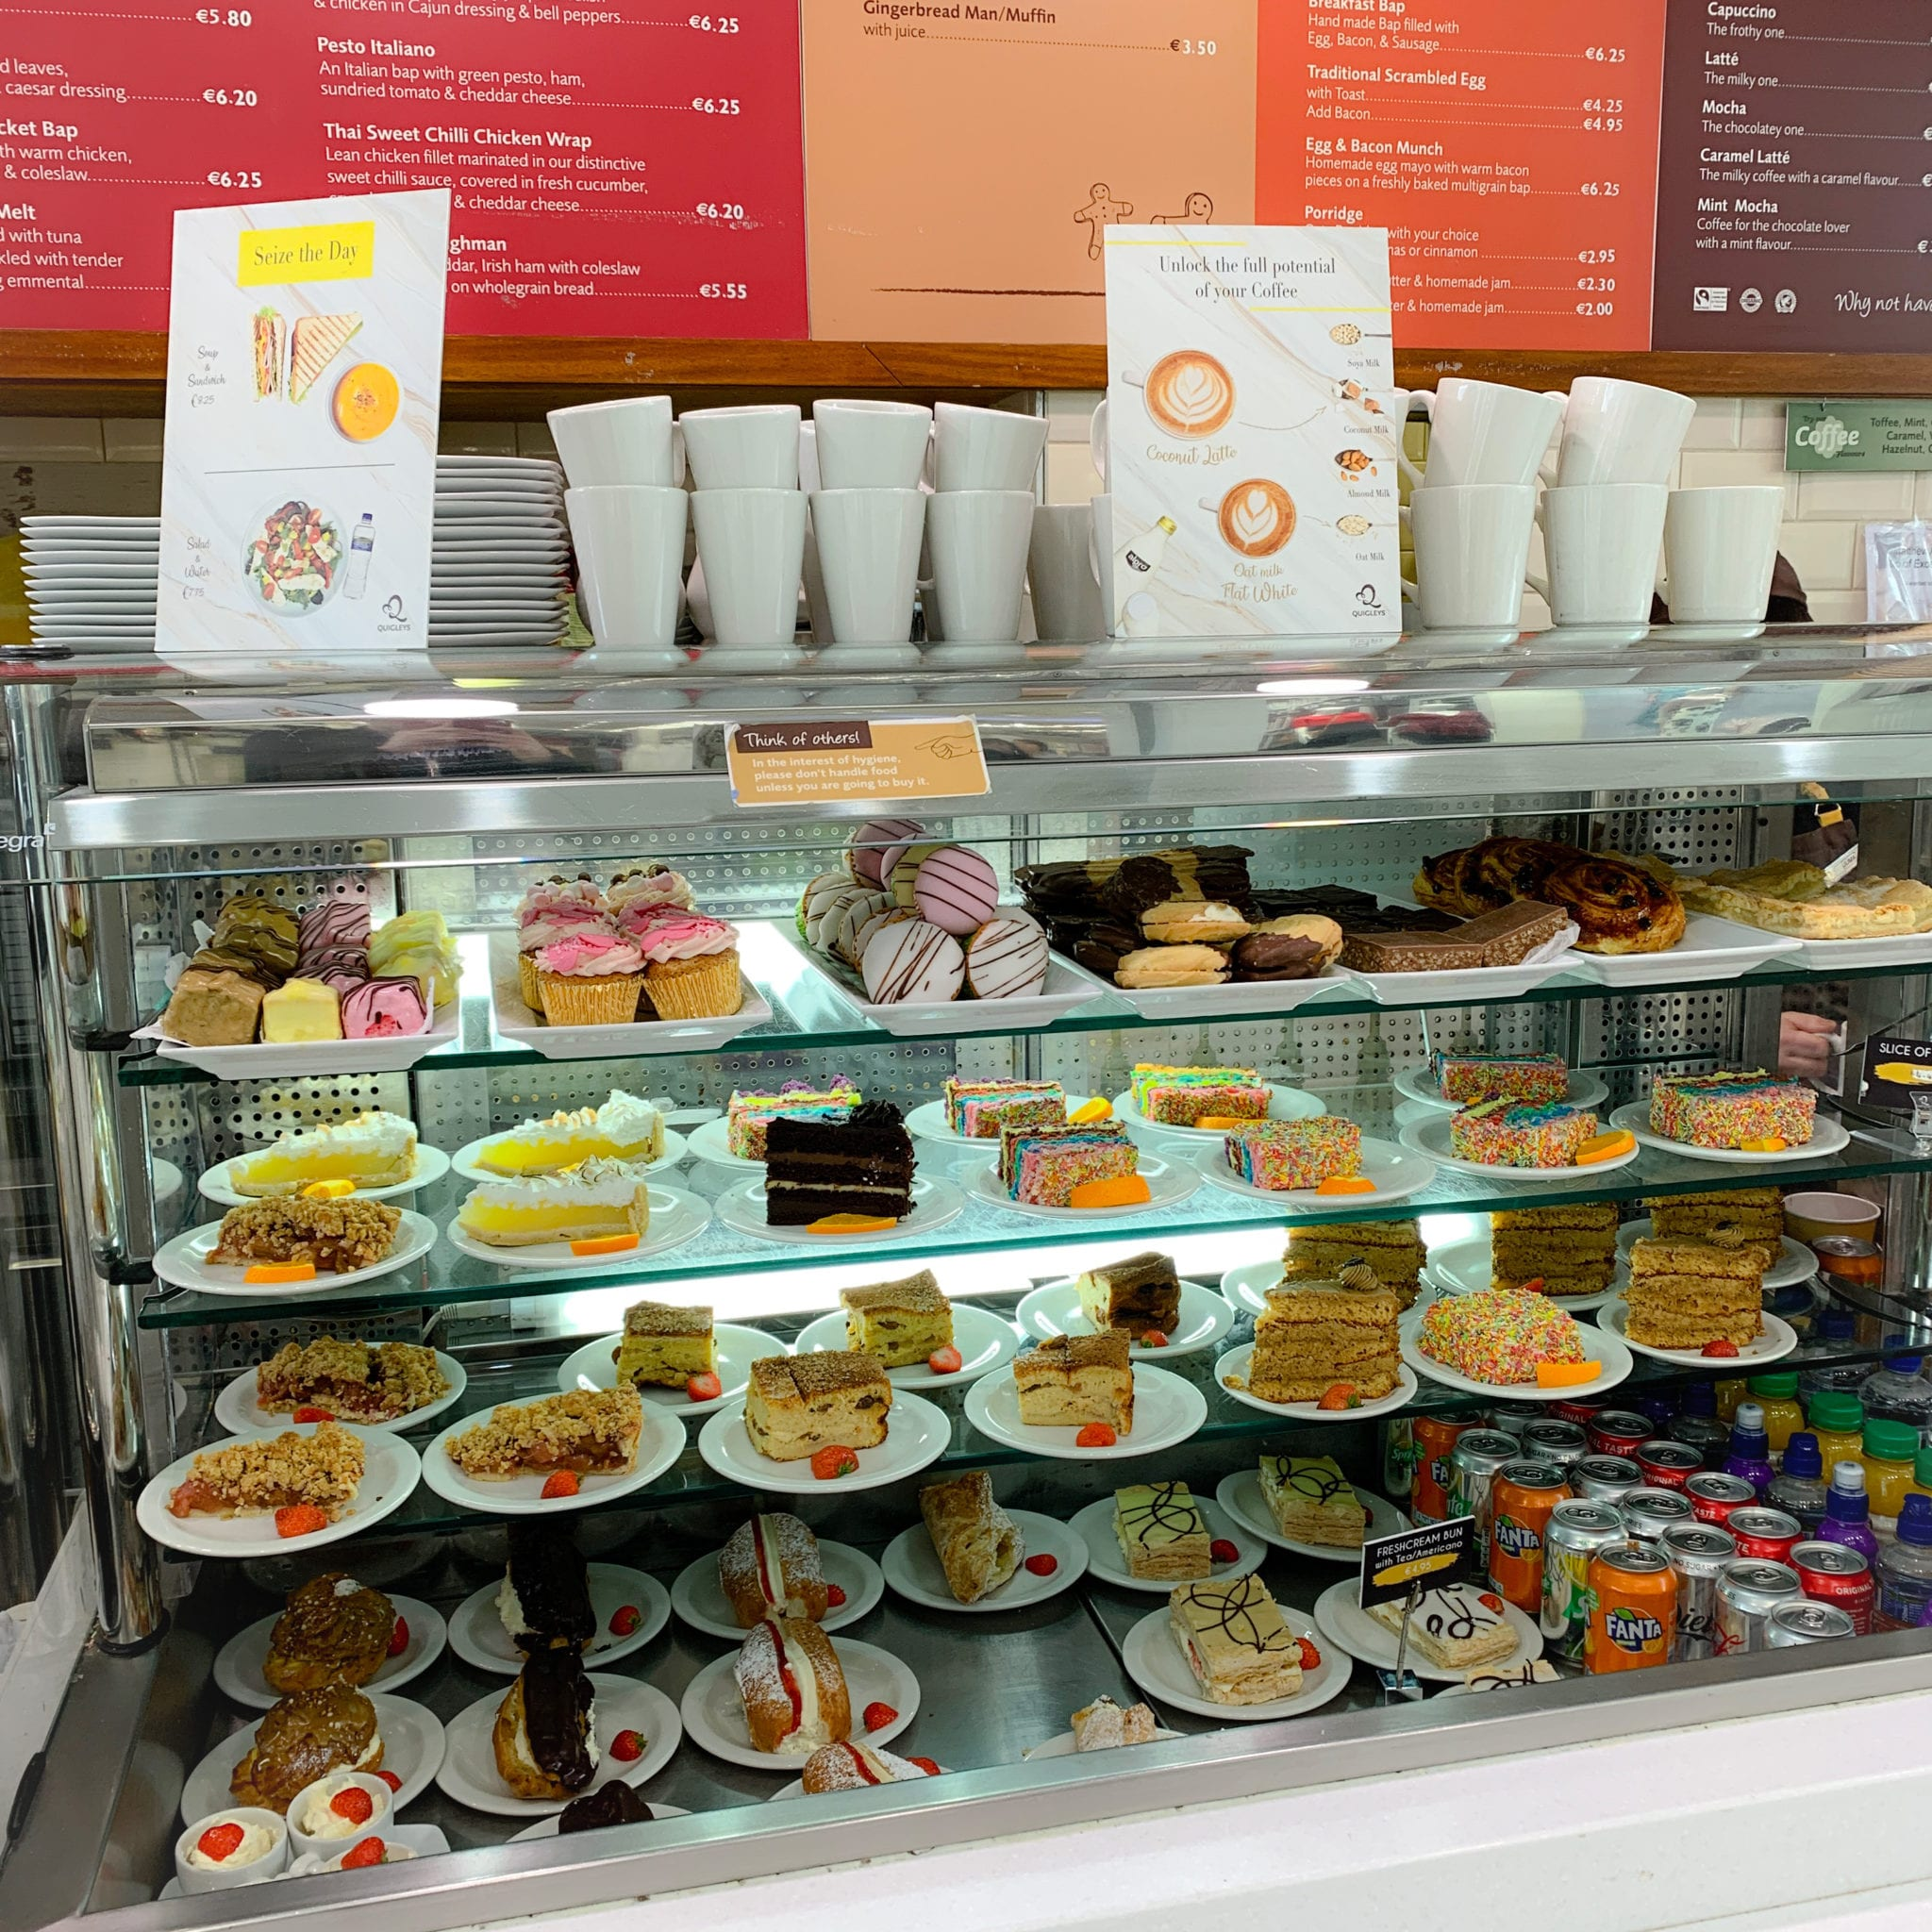 Fresh cream cakes, biscuits, cupcakes and desserts available in Quigleys bakery